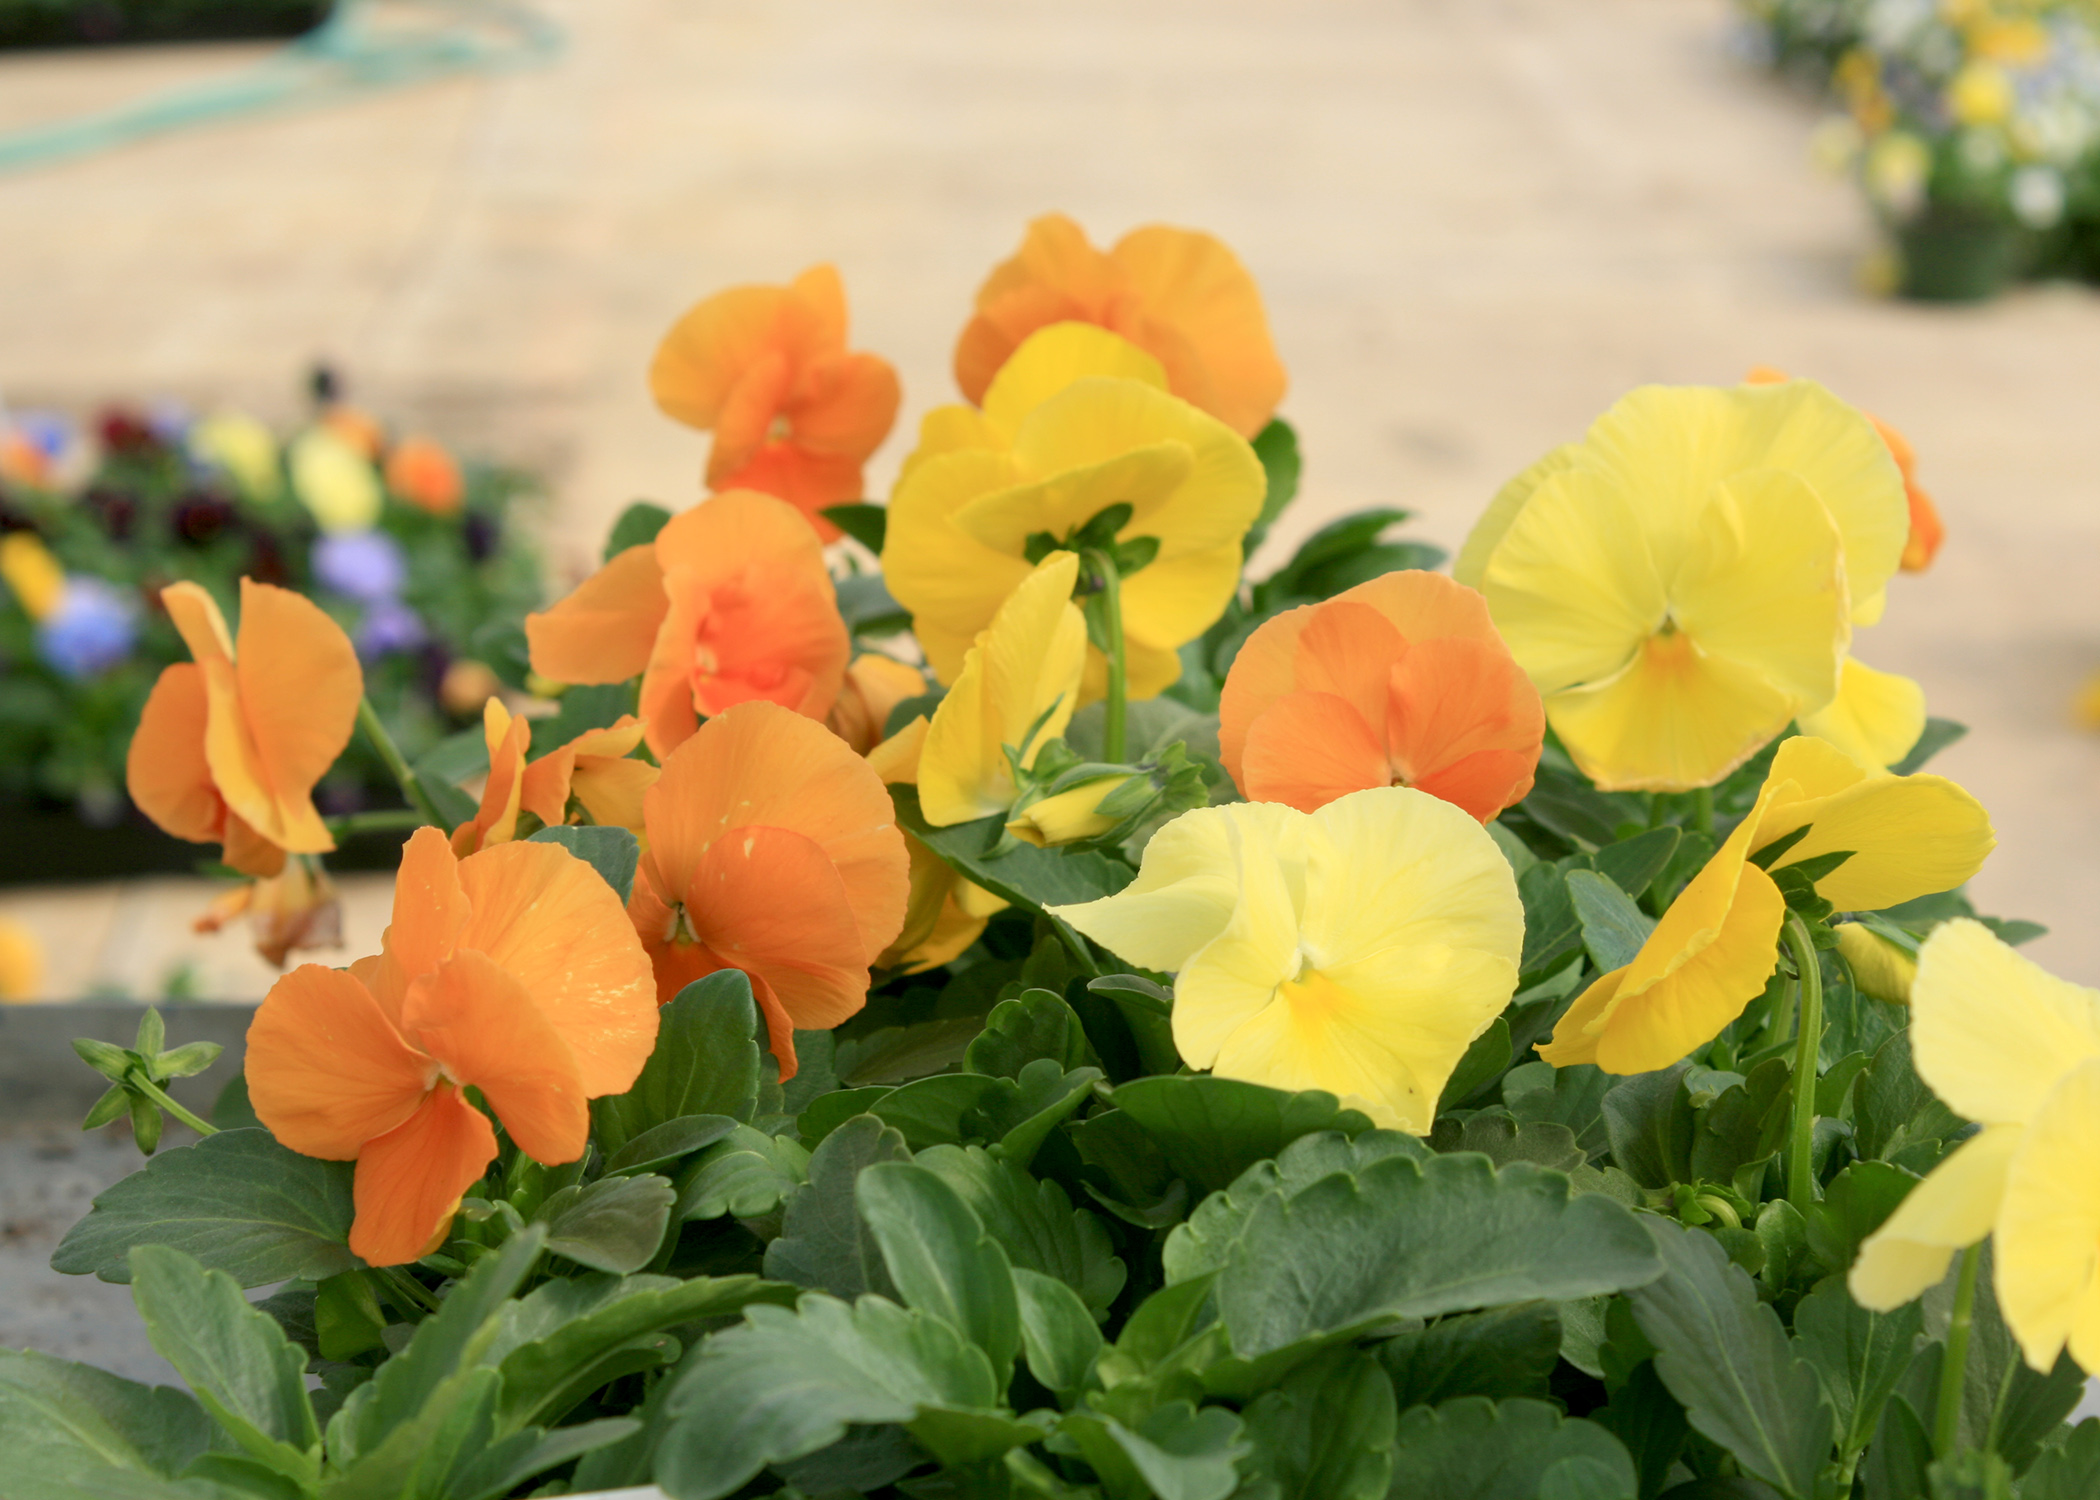 Pansies such as this Amber Mix Matrix selection without the traditional dark blotch are referred to as clear and are great for displaying pure color. (Photo by MSU Extension Service/Gary Bachman)